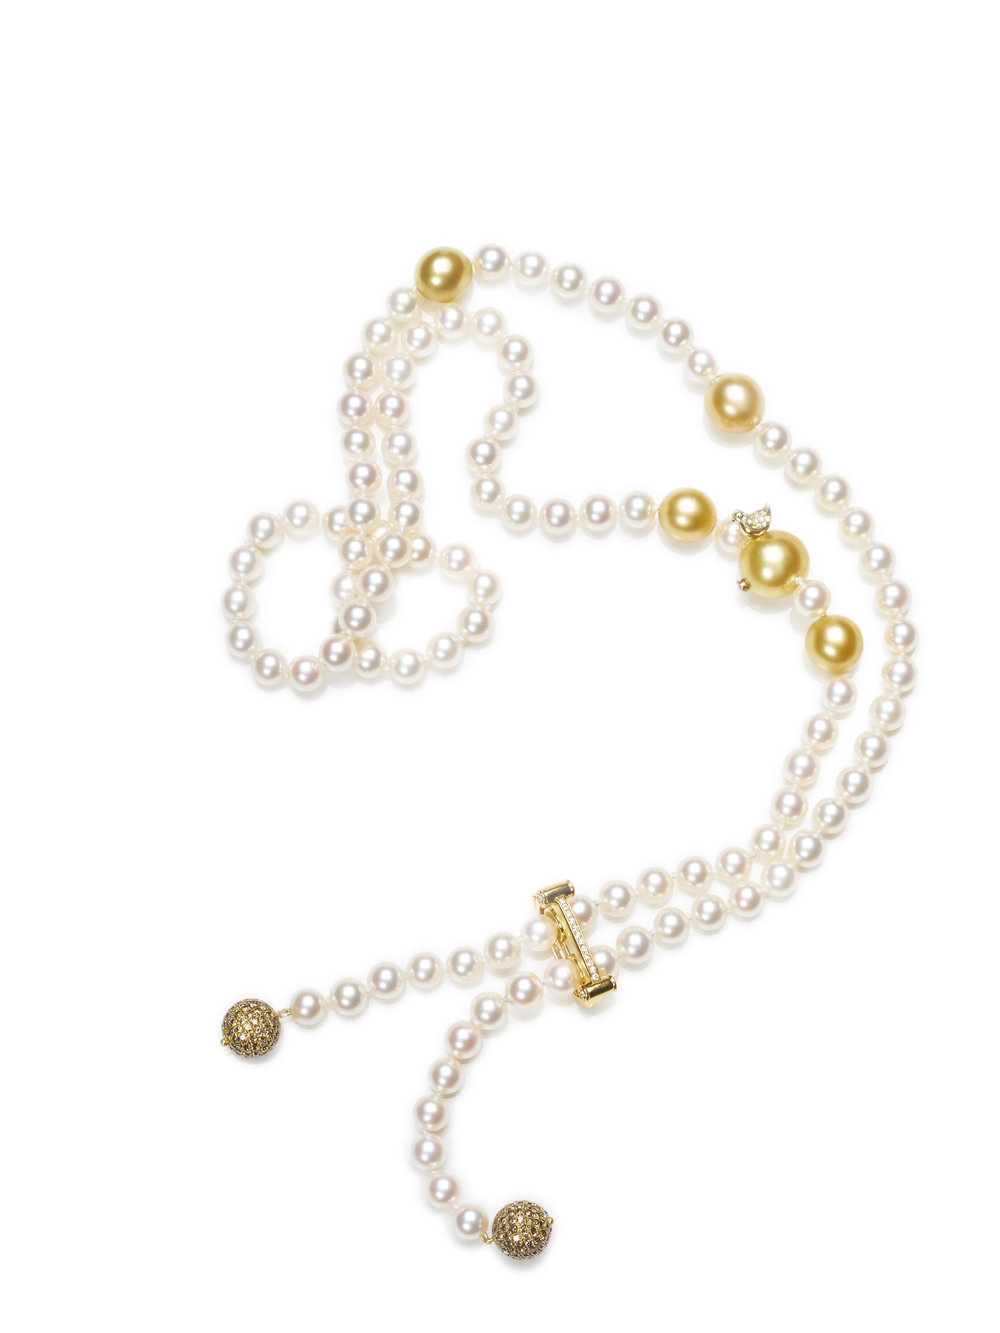 MARILYN NECKLACE   SOUTH SEA PEARLS 4.26 CT OF DIAMONDS     PEARL CLASP    18 K GOLD .2 CT OF DIAMONDS